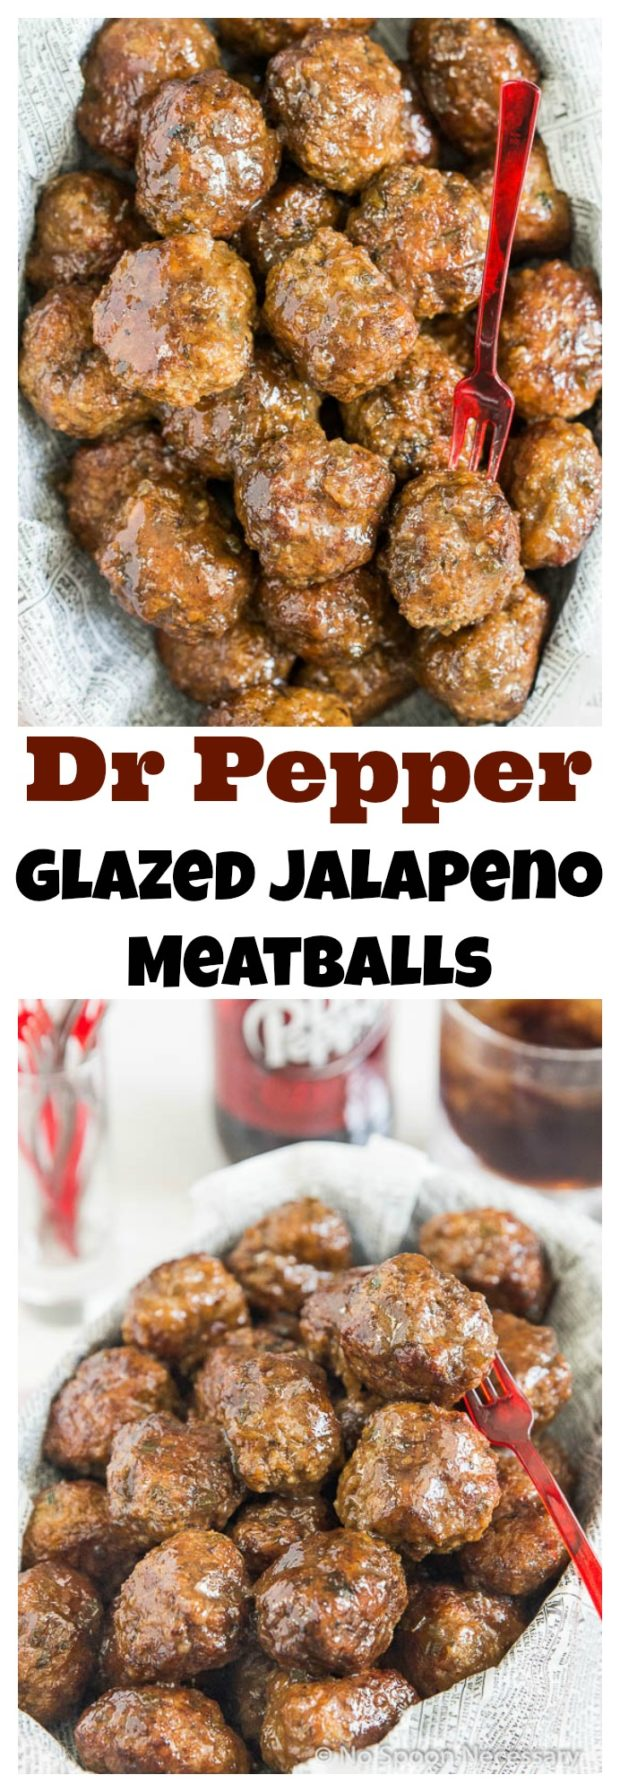 Dr Pepper Glazed Jalapeno Meatballs 1